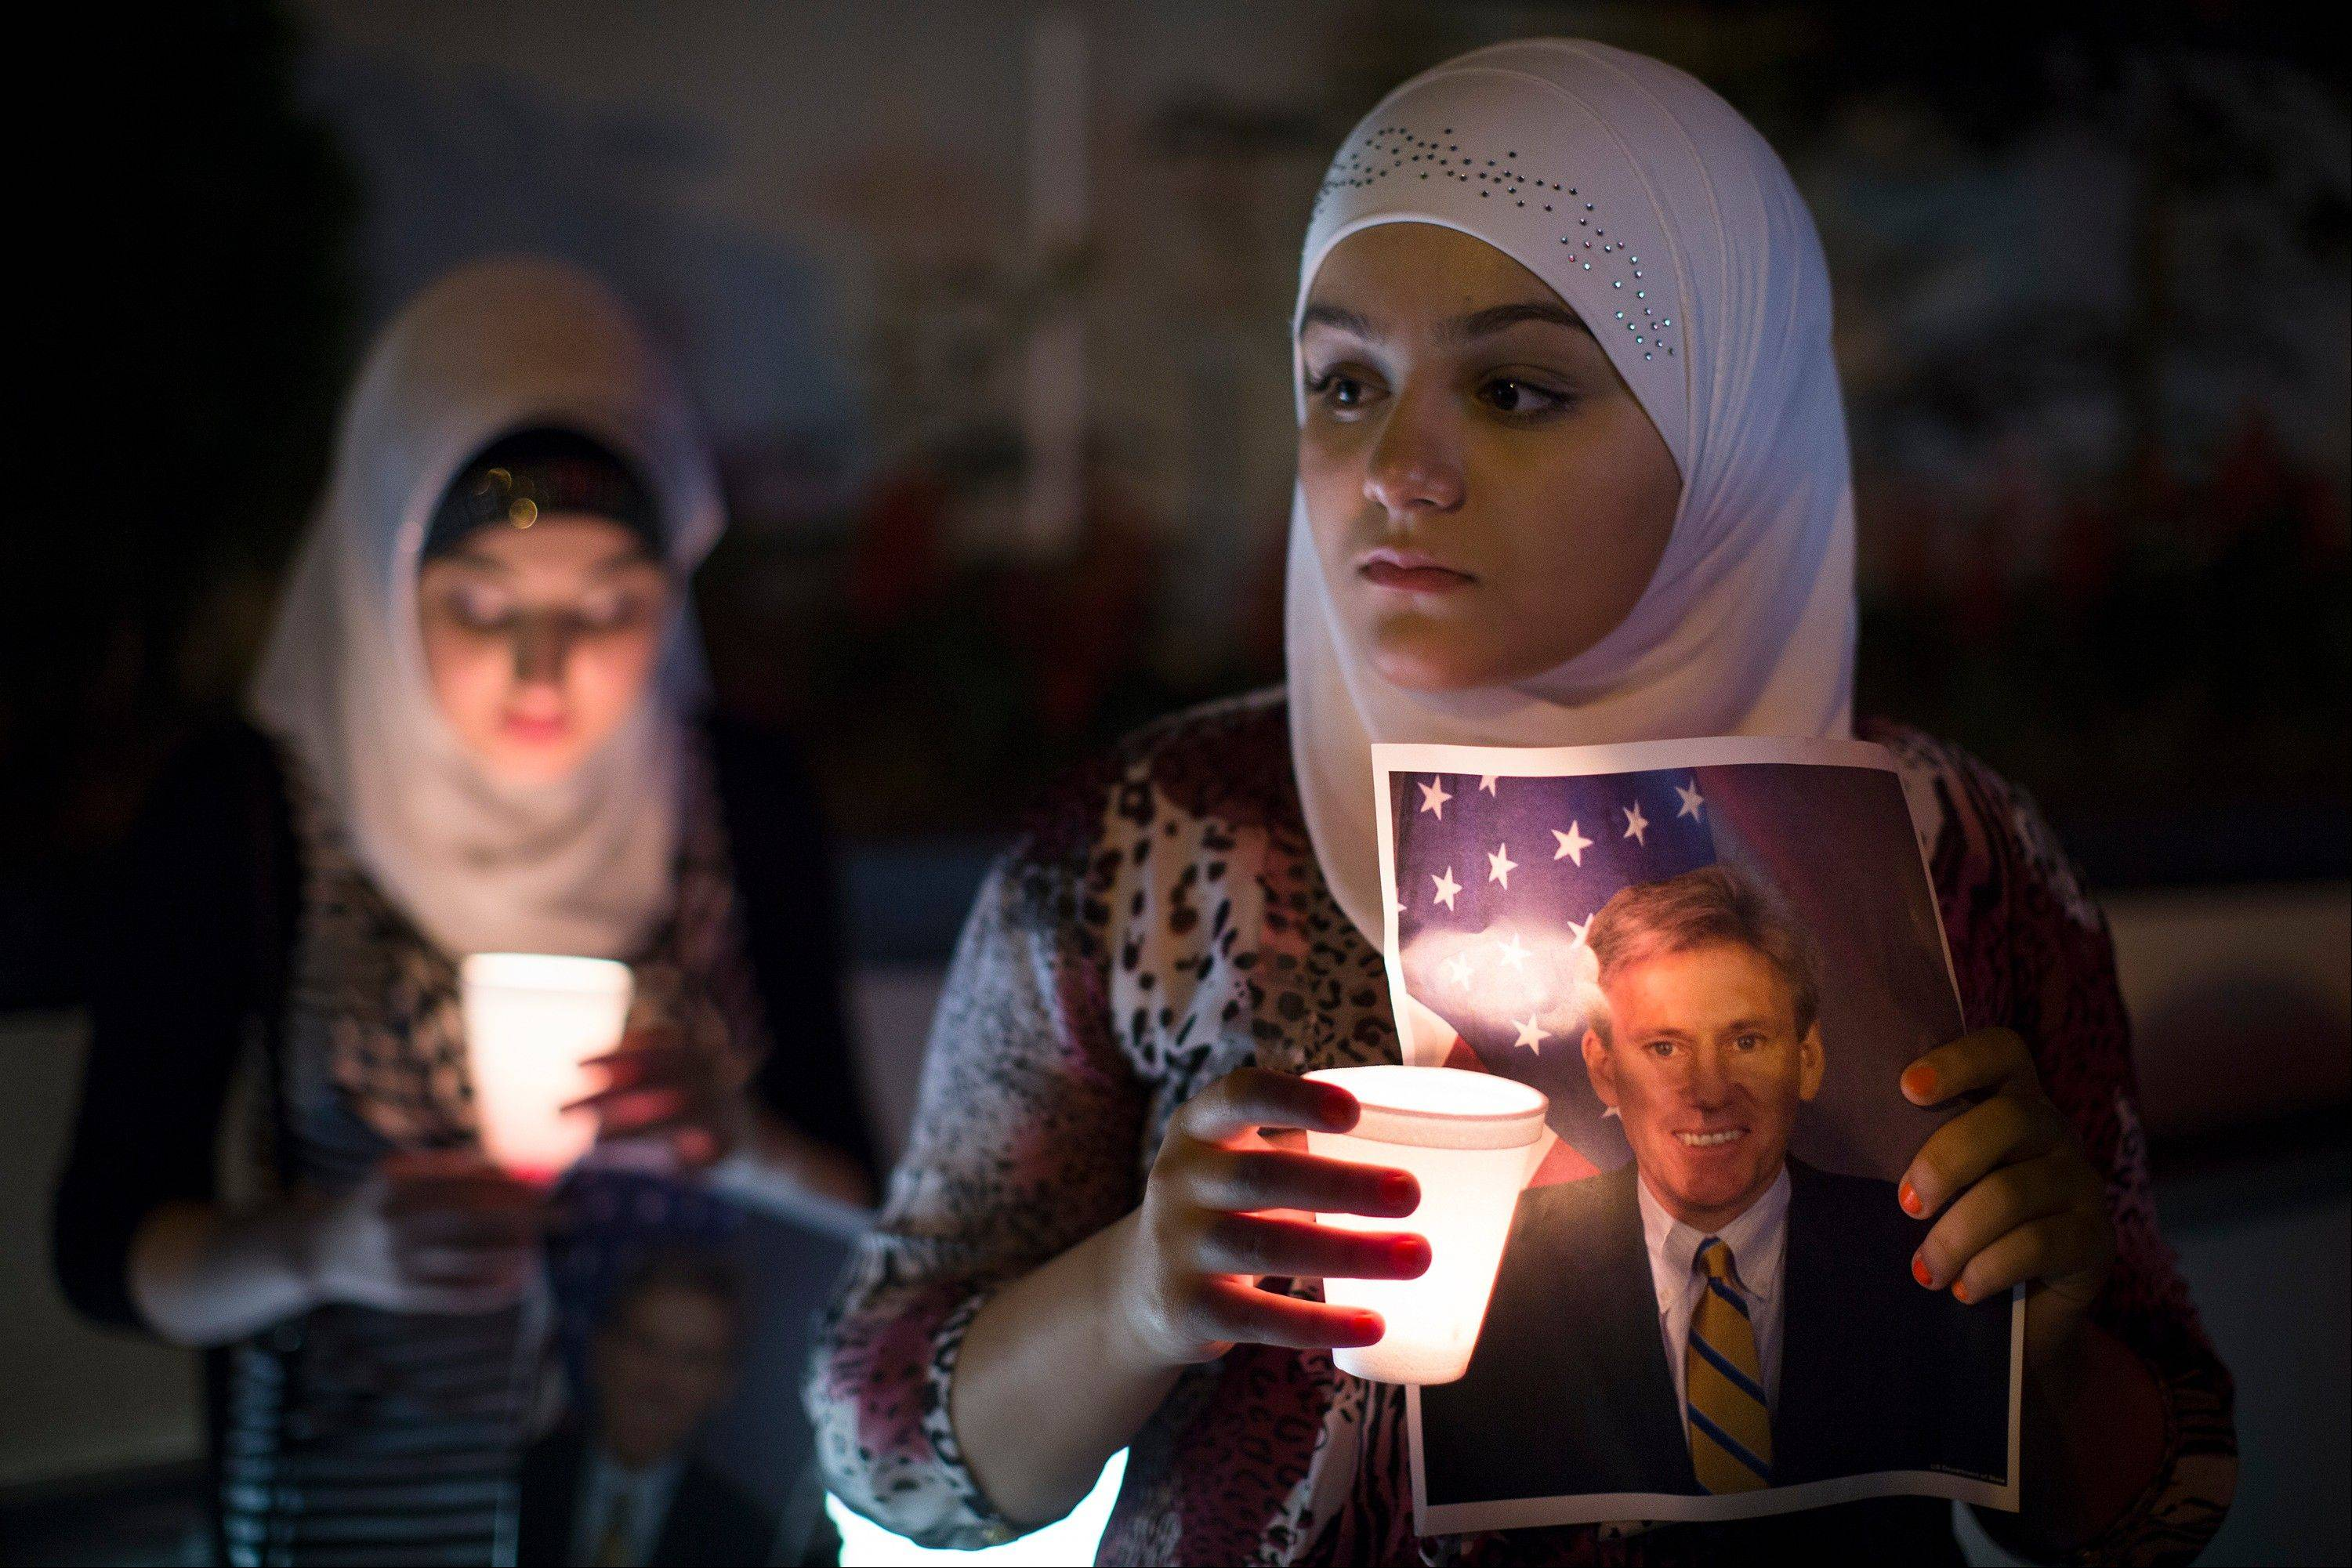 Dilan Samo, 13, holds a picture of slain U.S. ambassador to Libya Christopher Stevens during a candlelight vigil outside the Libyan Embassy, Thursday, Sept. 13, 2012, in New York. Stevens was killed by an angry mob during an assault on the American embassy in Benghazi that stemmed from the widespread anger generated by an American made anti-Muslim film.